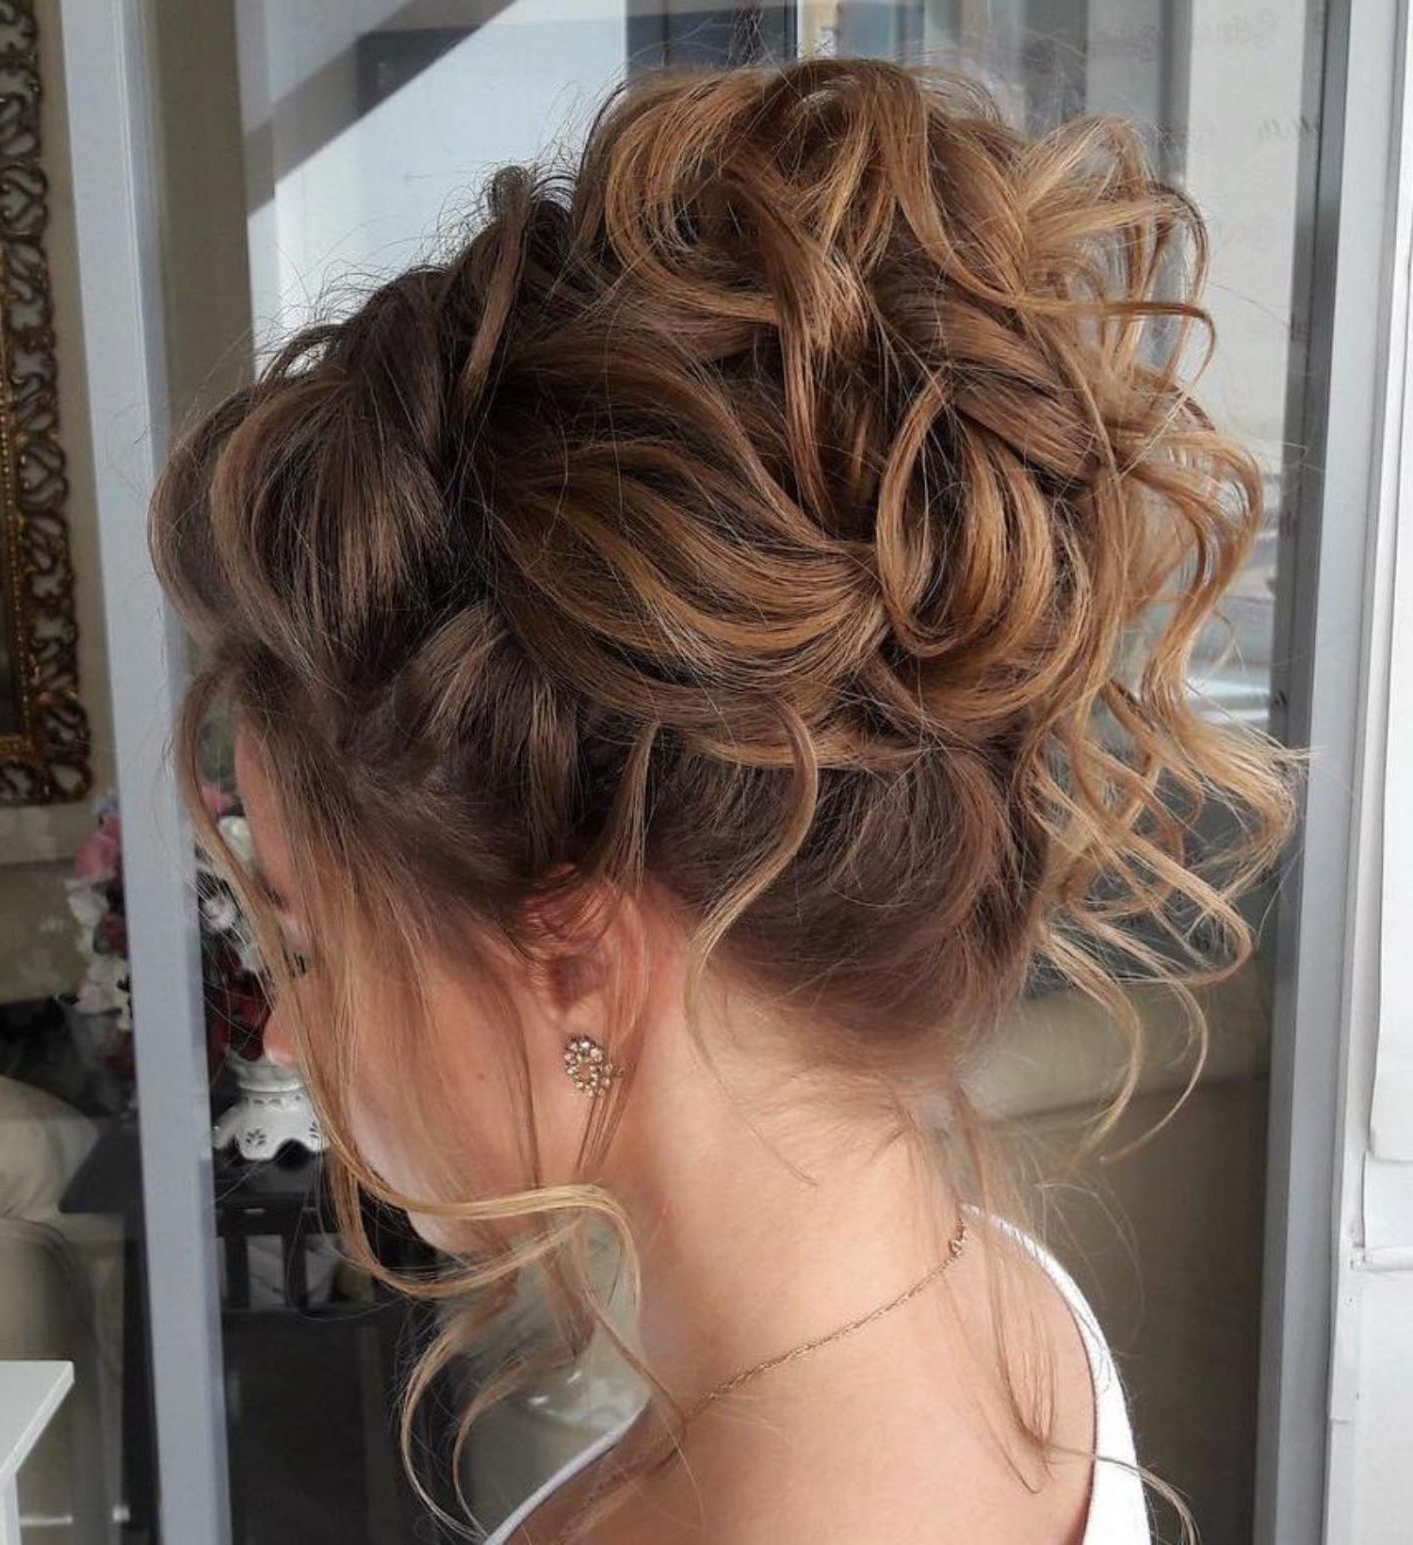 Hairstyles : Updo Hairstyles For Long Hair For Prom Latest 40 Intended For Current Formal Curly Hairdo For Long Hairstyles (View 14 of 20)